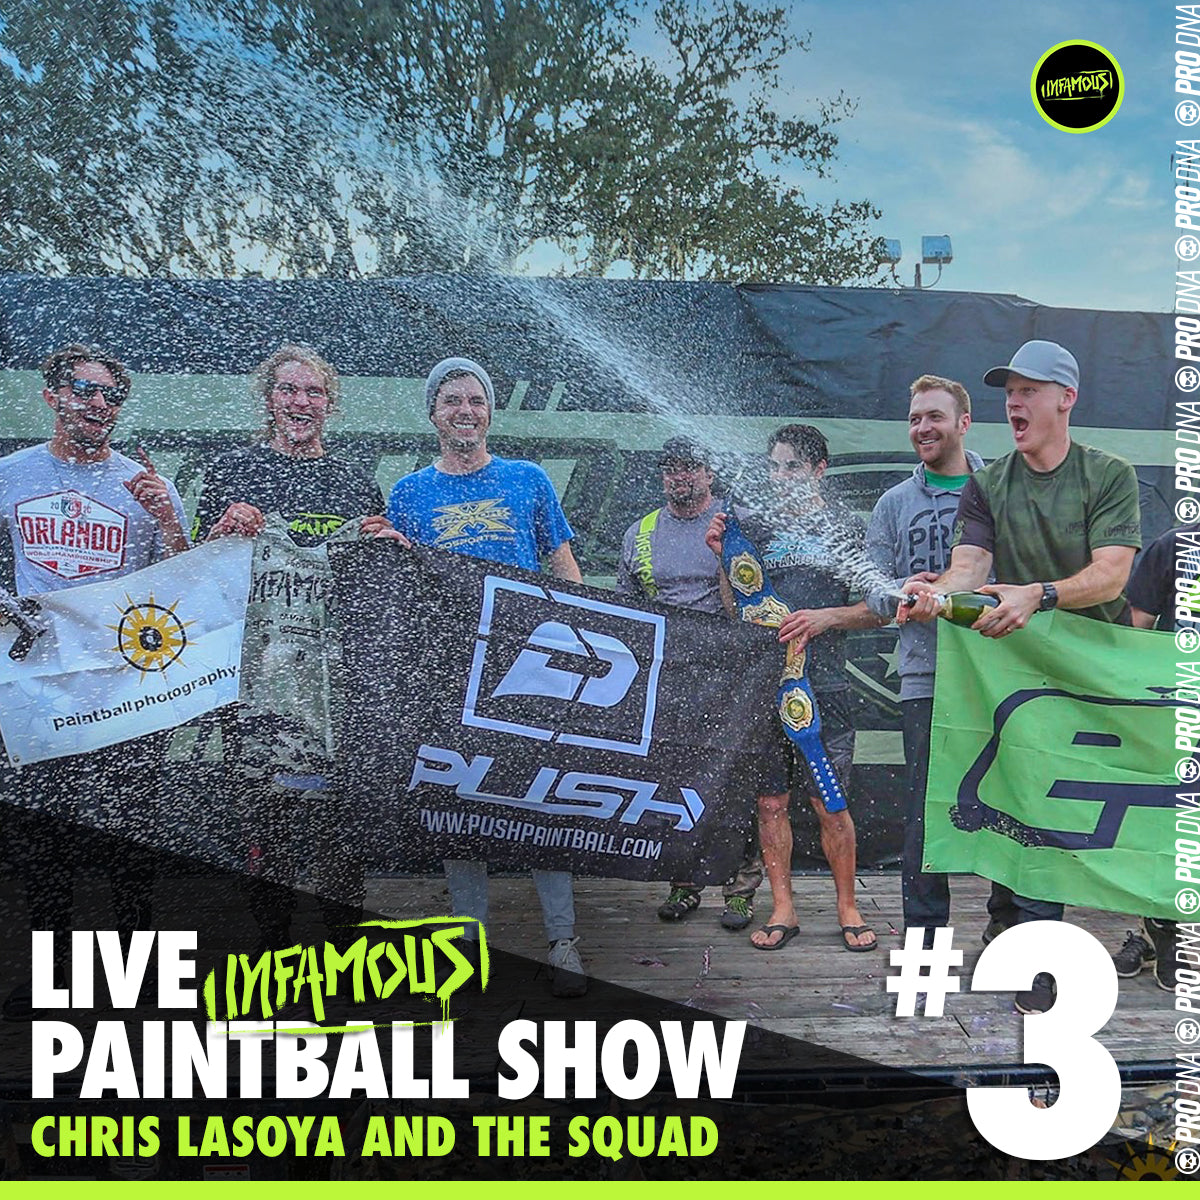 Infamous Live Paintball Show #3